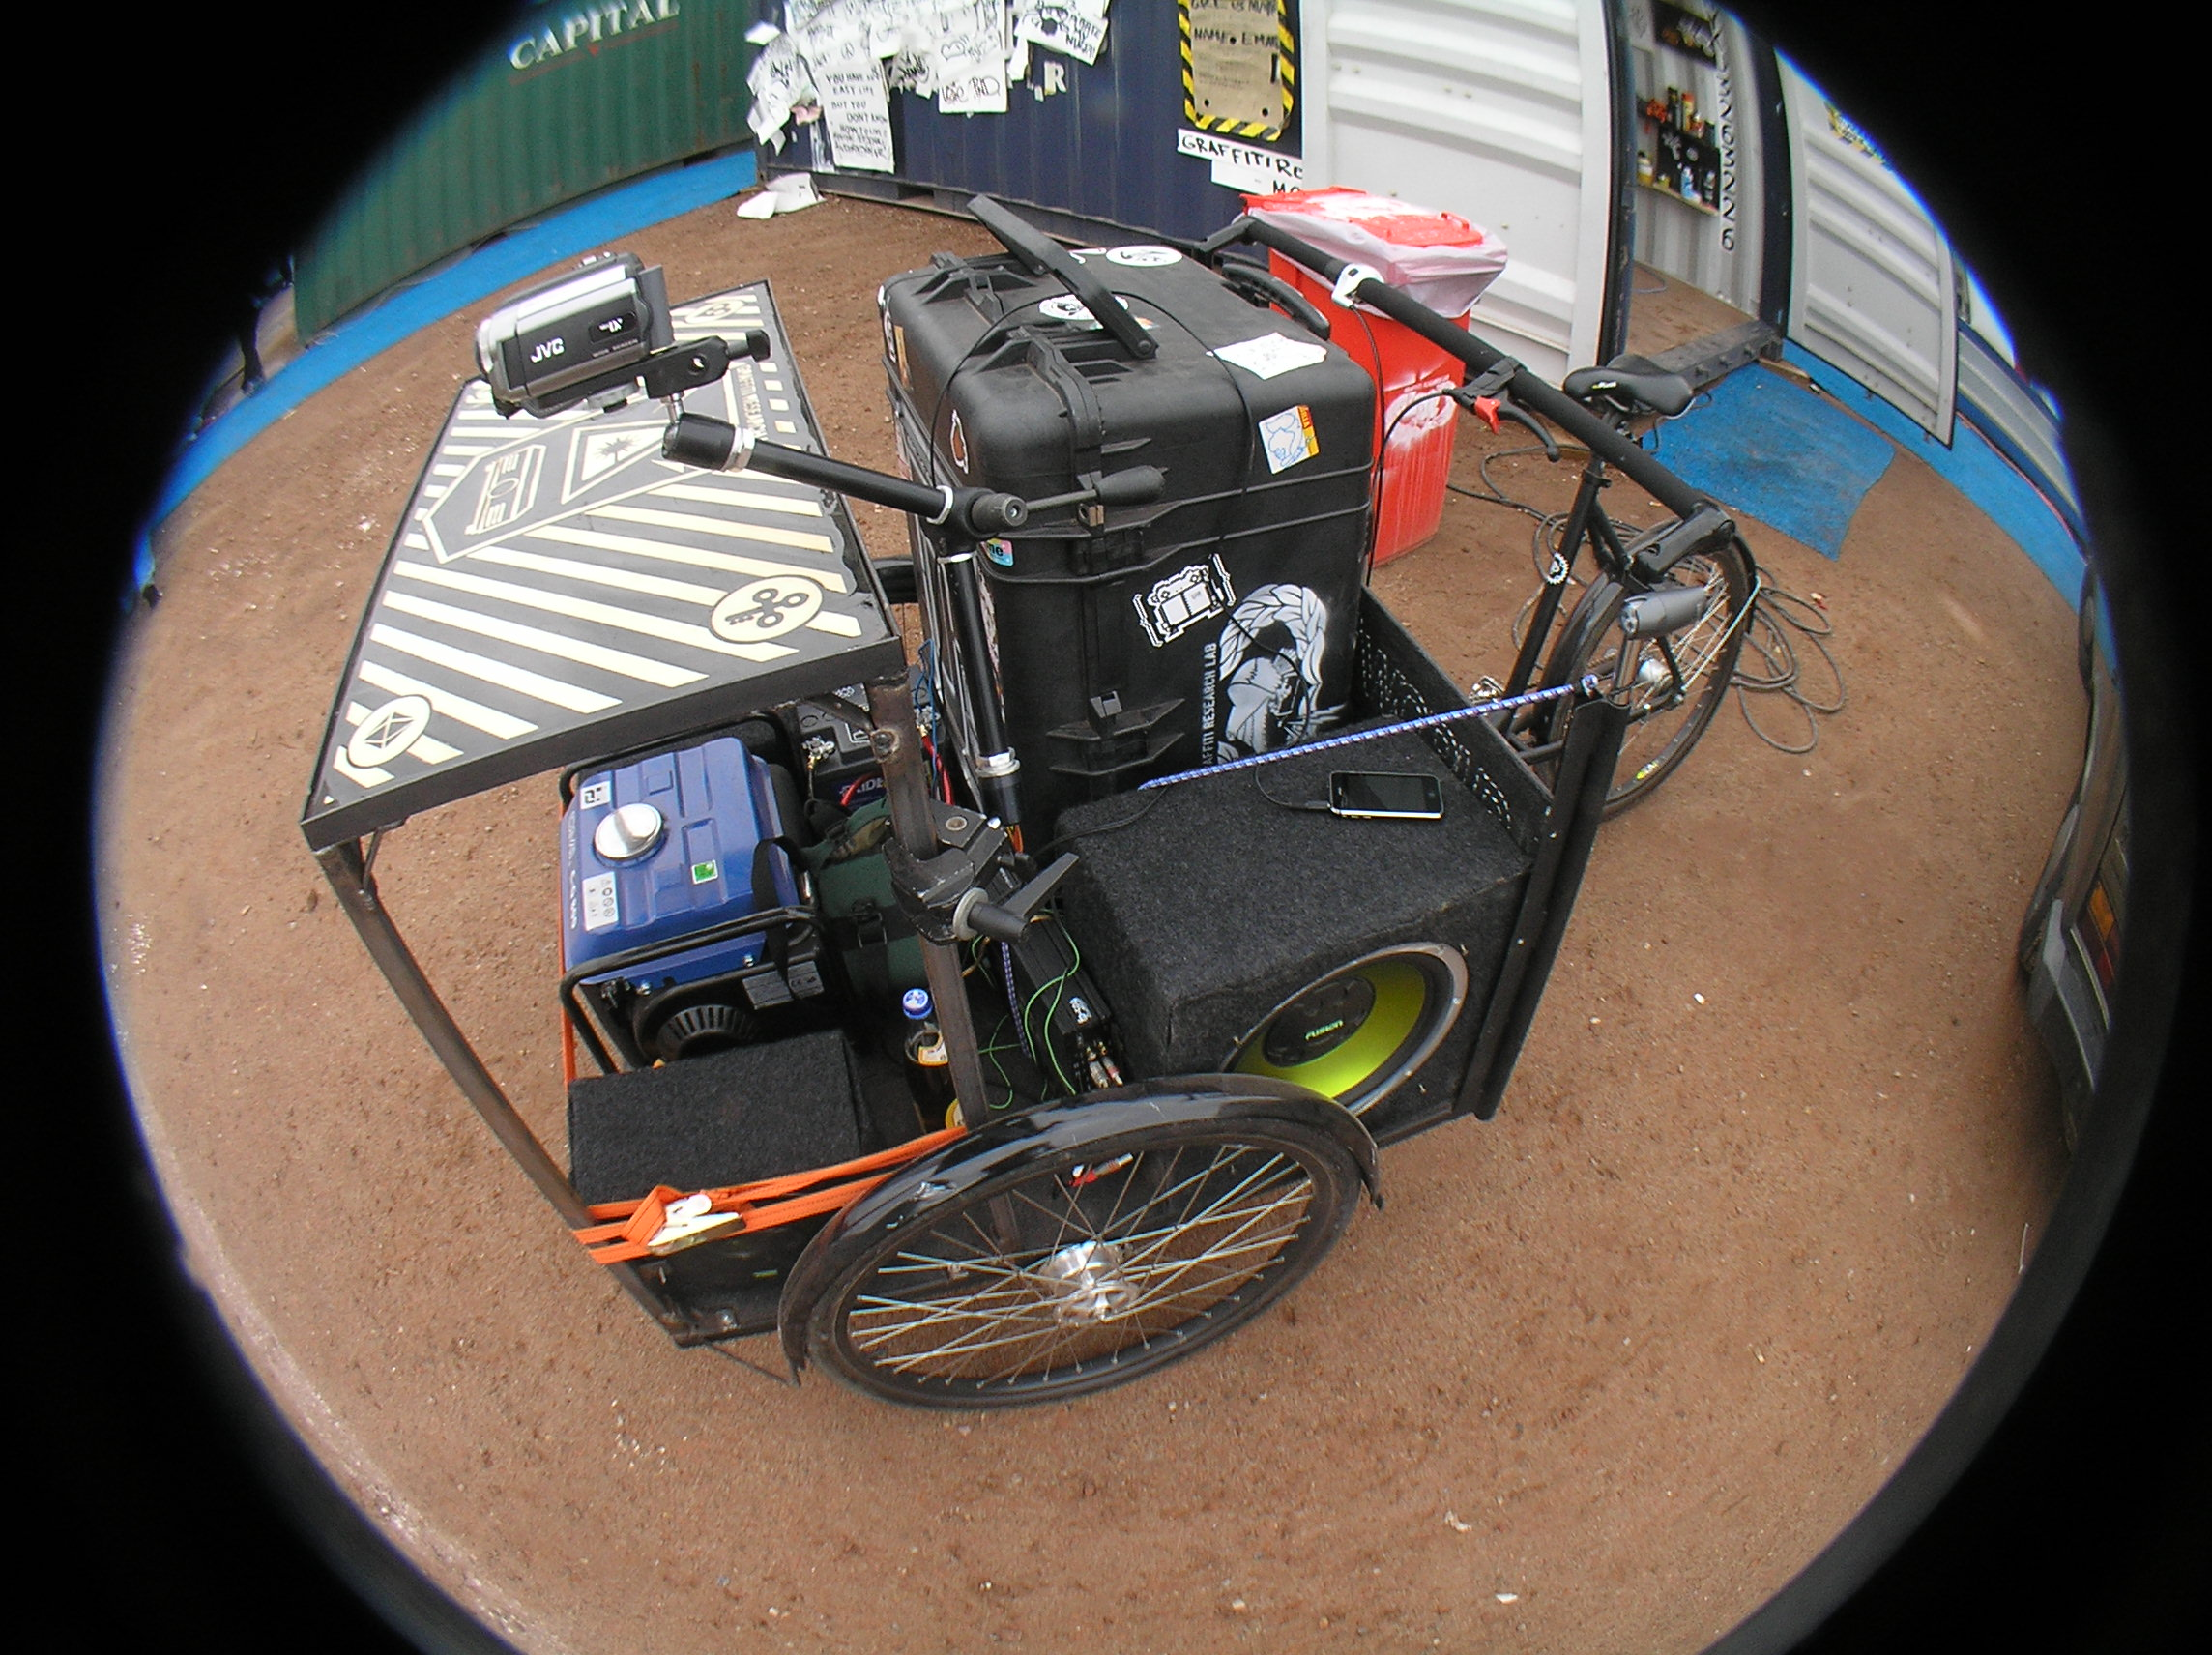 Mobile Broadcast Unit (fisheye view)